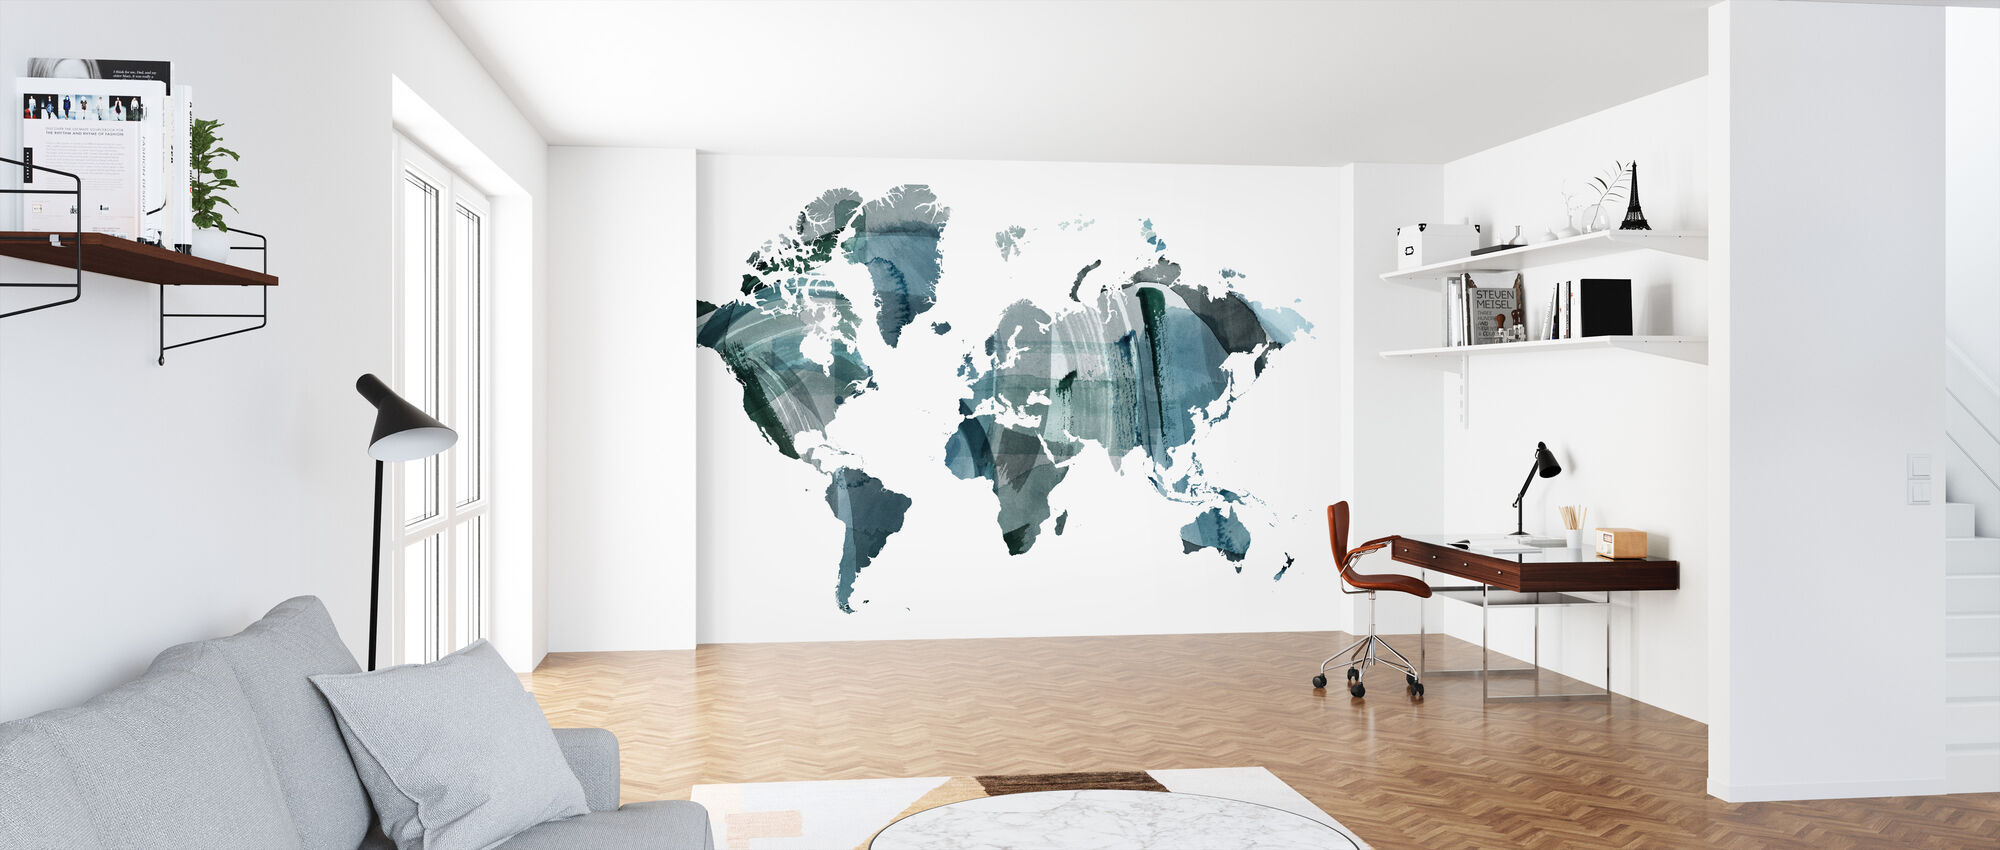 World Wash - Wallpaper - Office